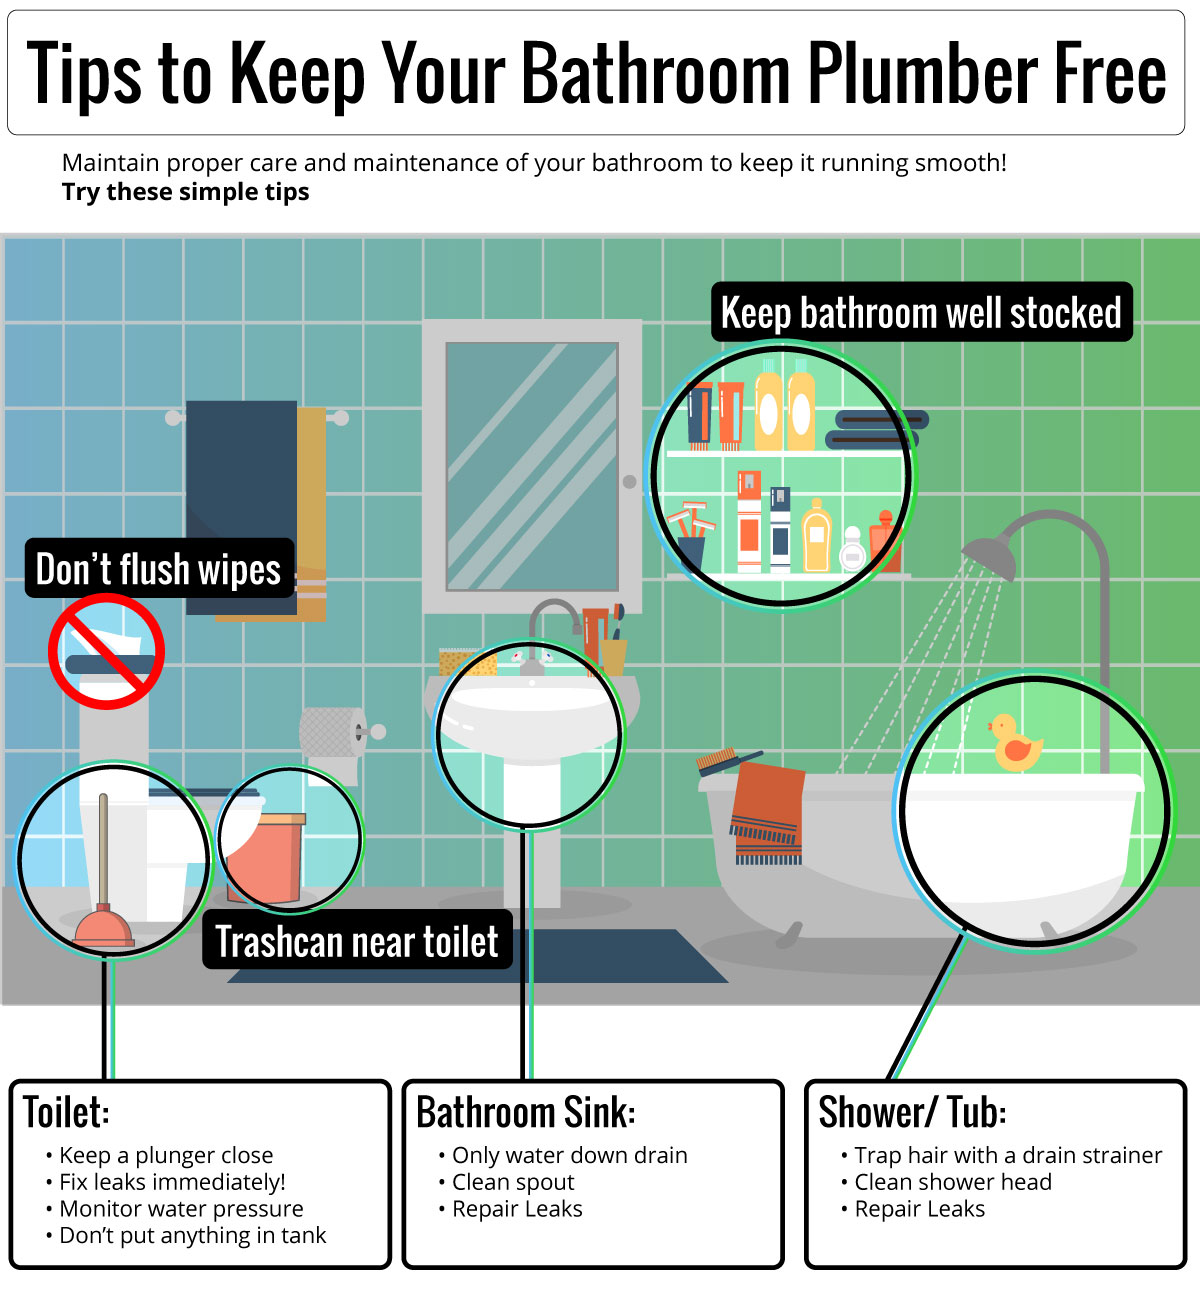 Bathroom-Plumber-Free-Infographic